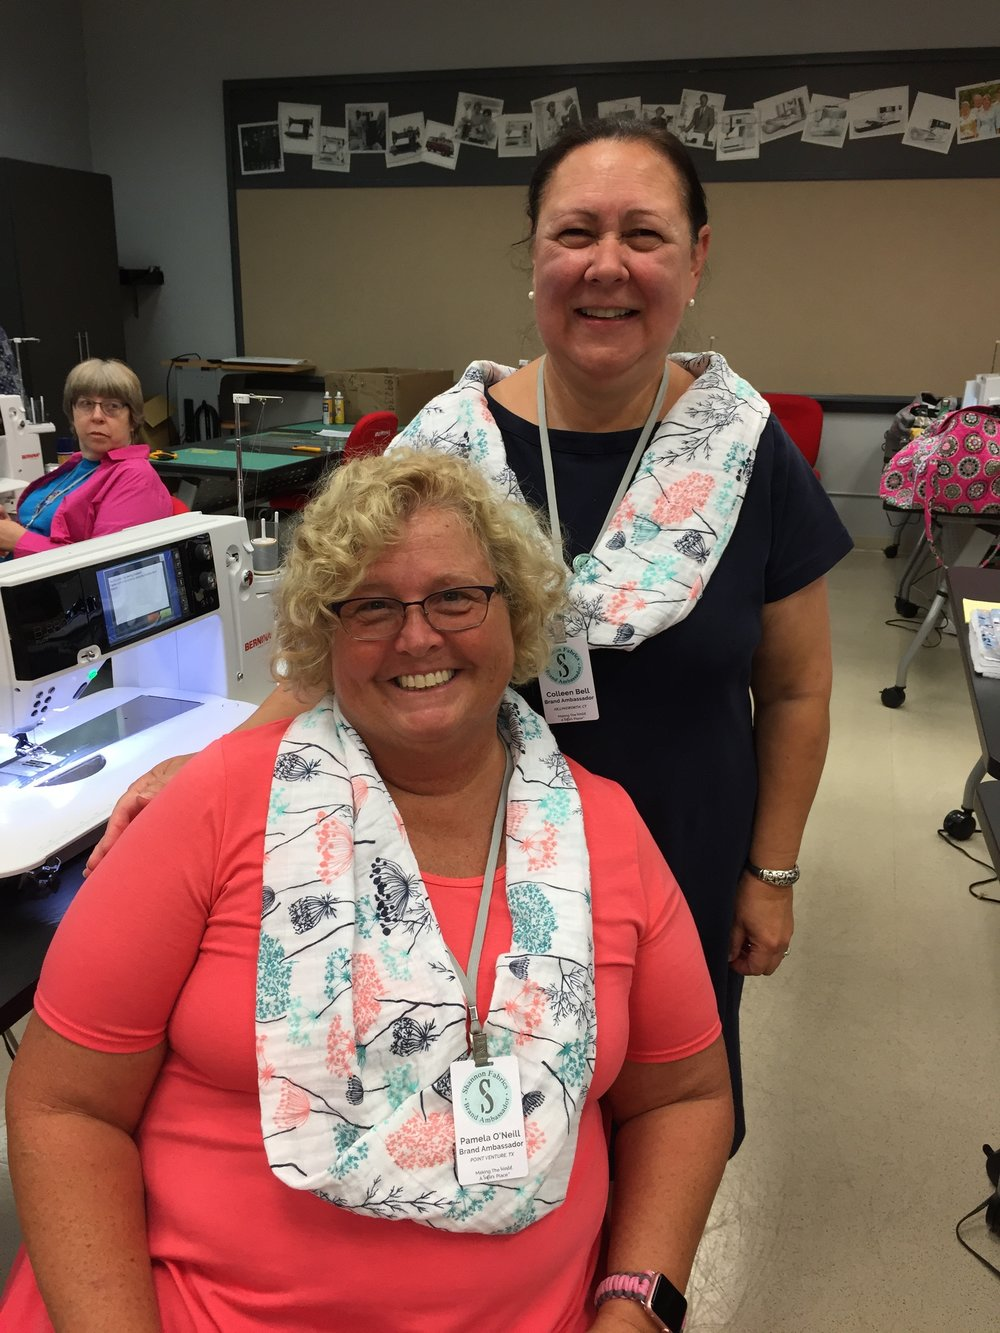 Not only did we wear the same scarf, we were sewing partners that had the common bond of being the mother to large families - 8 for Pamela O'Neil and 9 for me